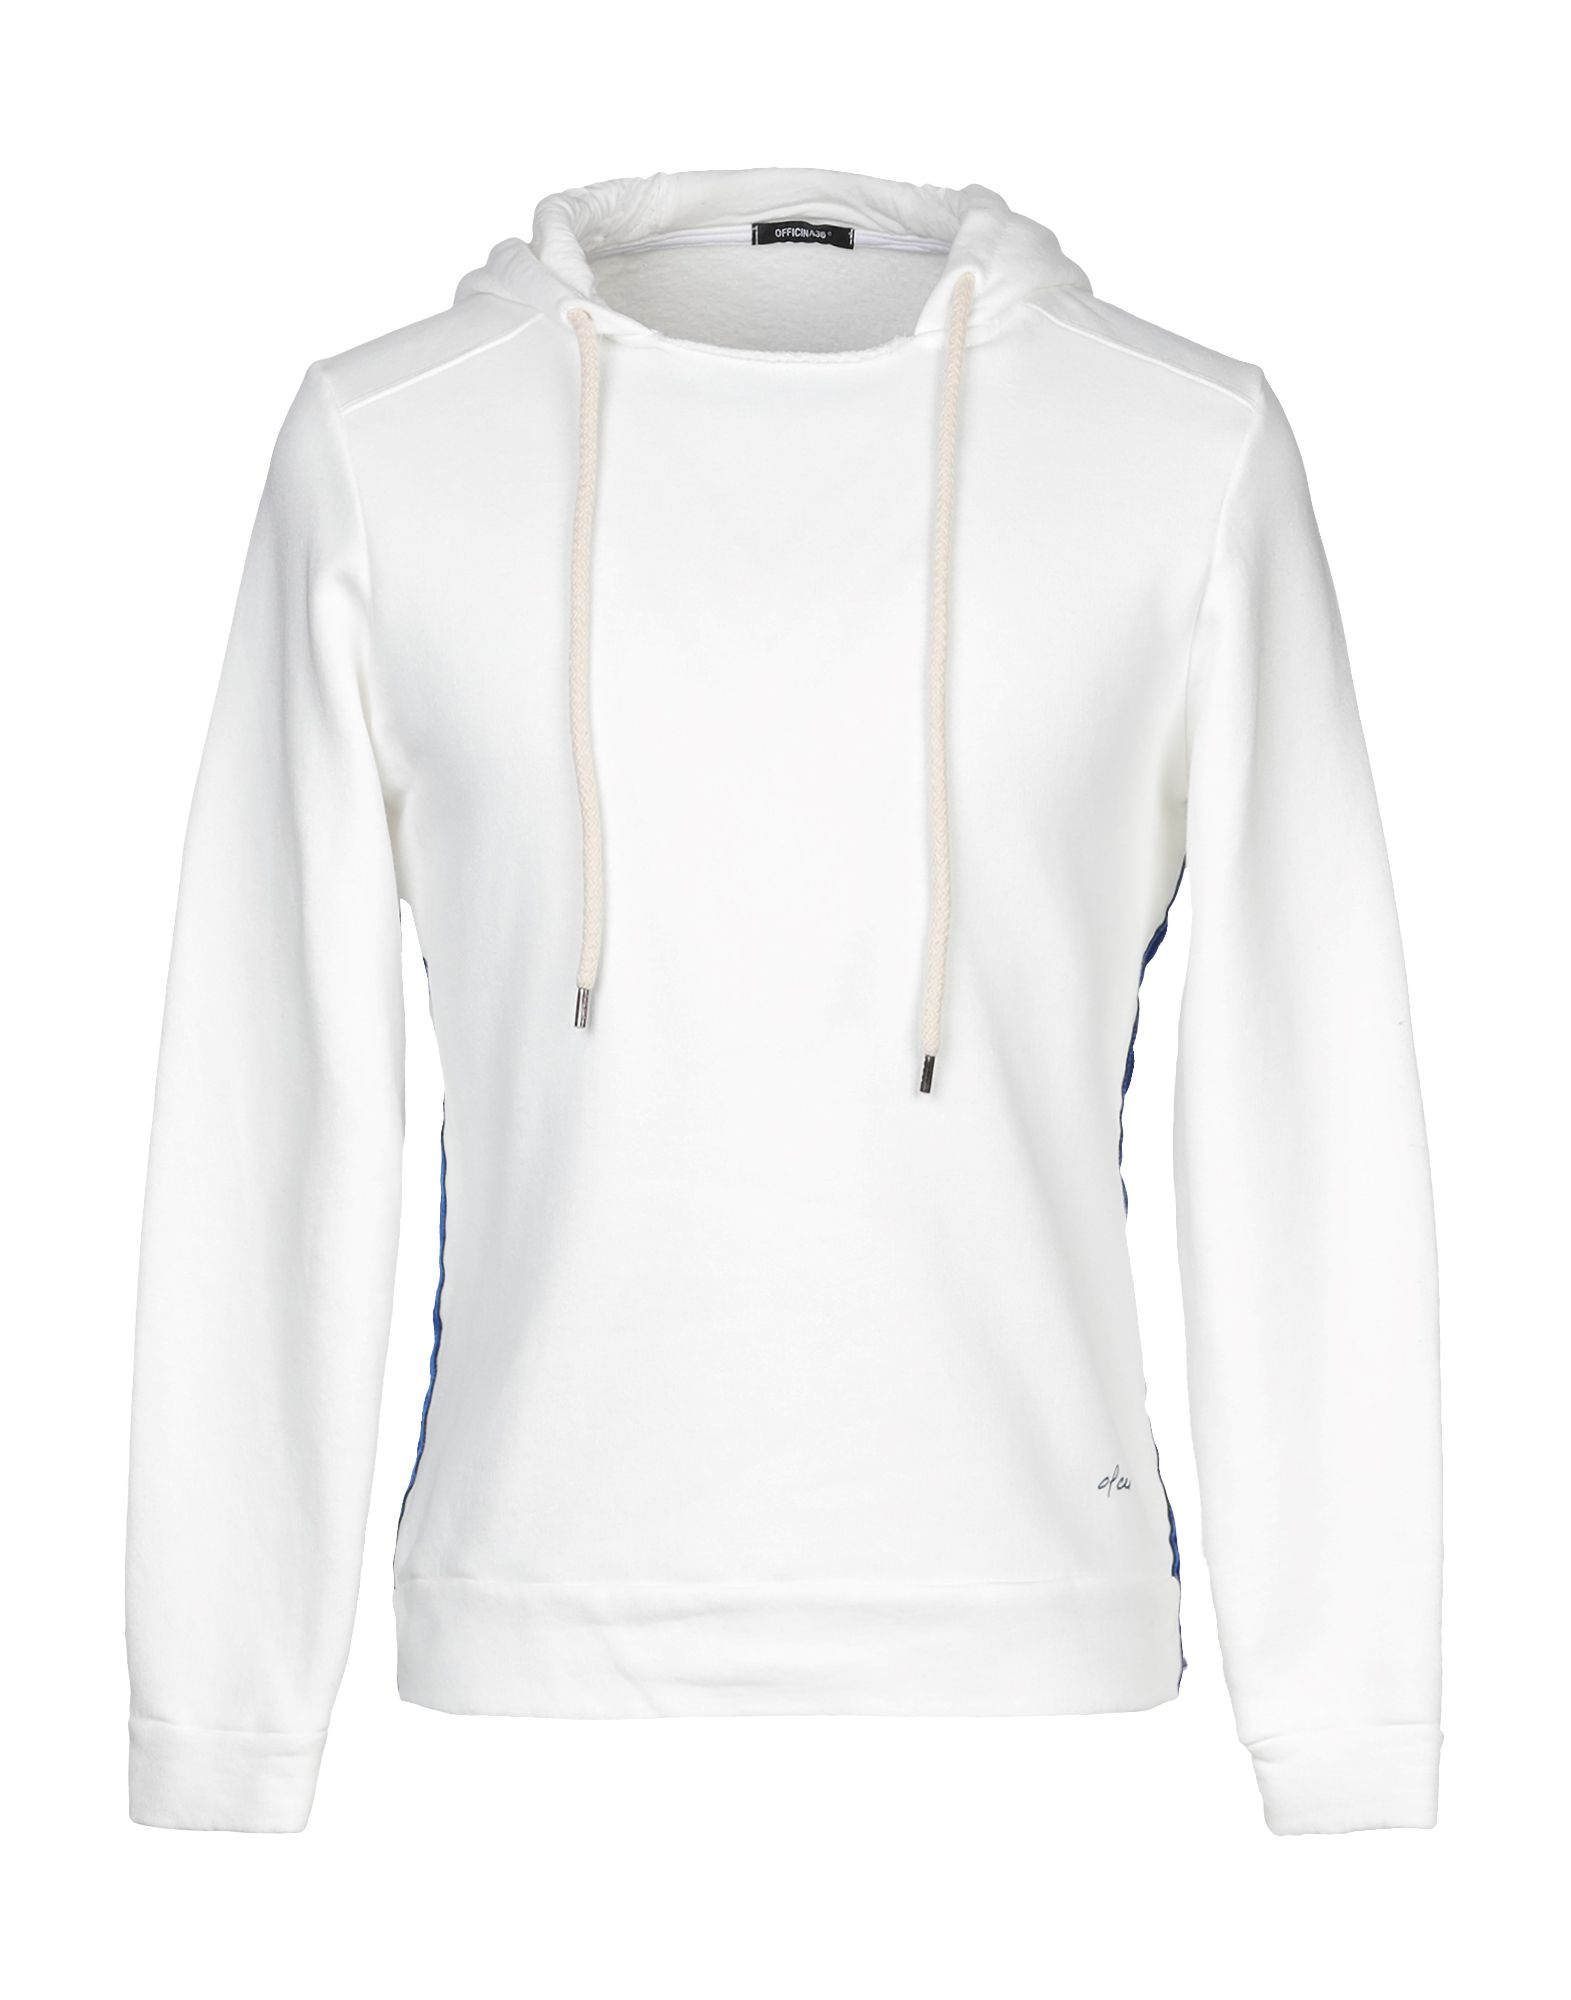 officina 36 hooded sweatshirt sweaters and sweatshirts yoox com team 365 sweatshirts sweatshirts 36 #6